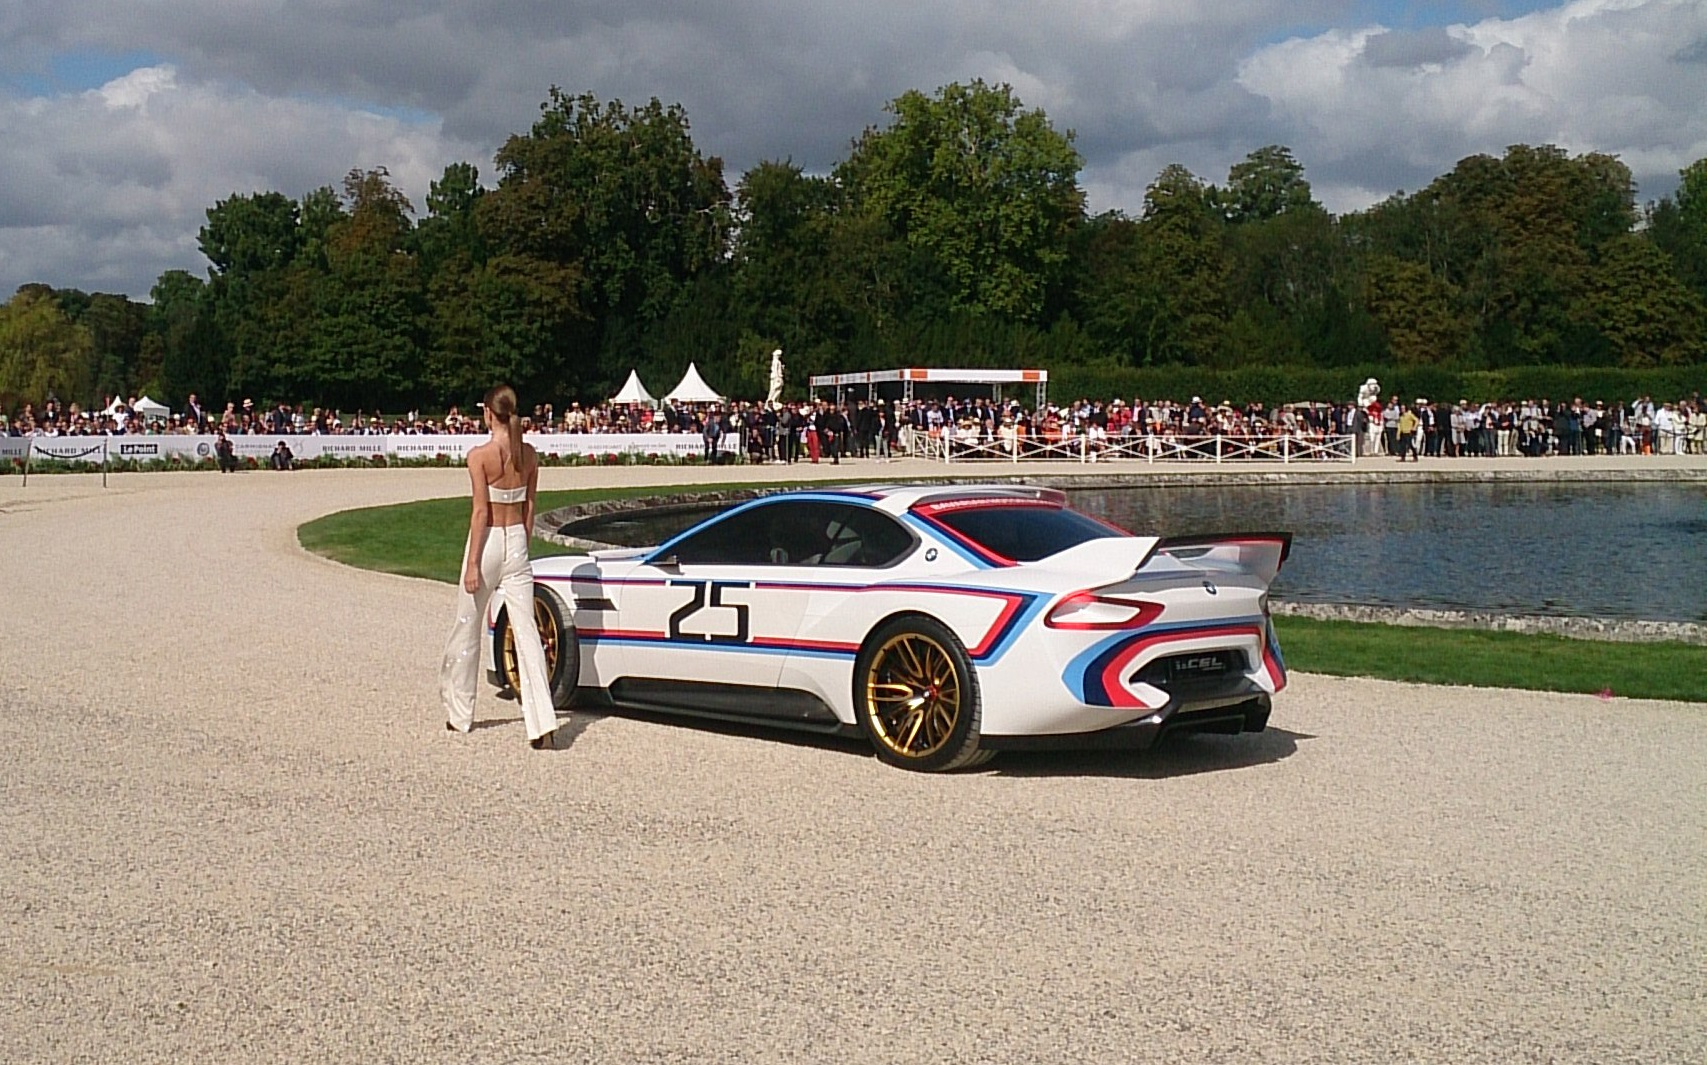 bmw csl hommage rchantilly richard mille arts et elegance 2015 1 en voiture carine. Black Bedroom Furniture Sets. Home Design Ideas